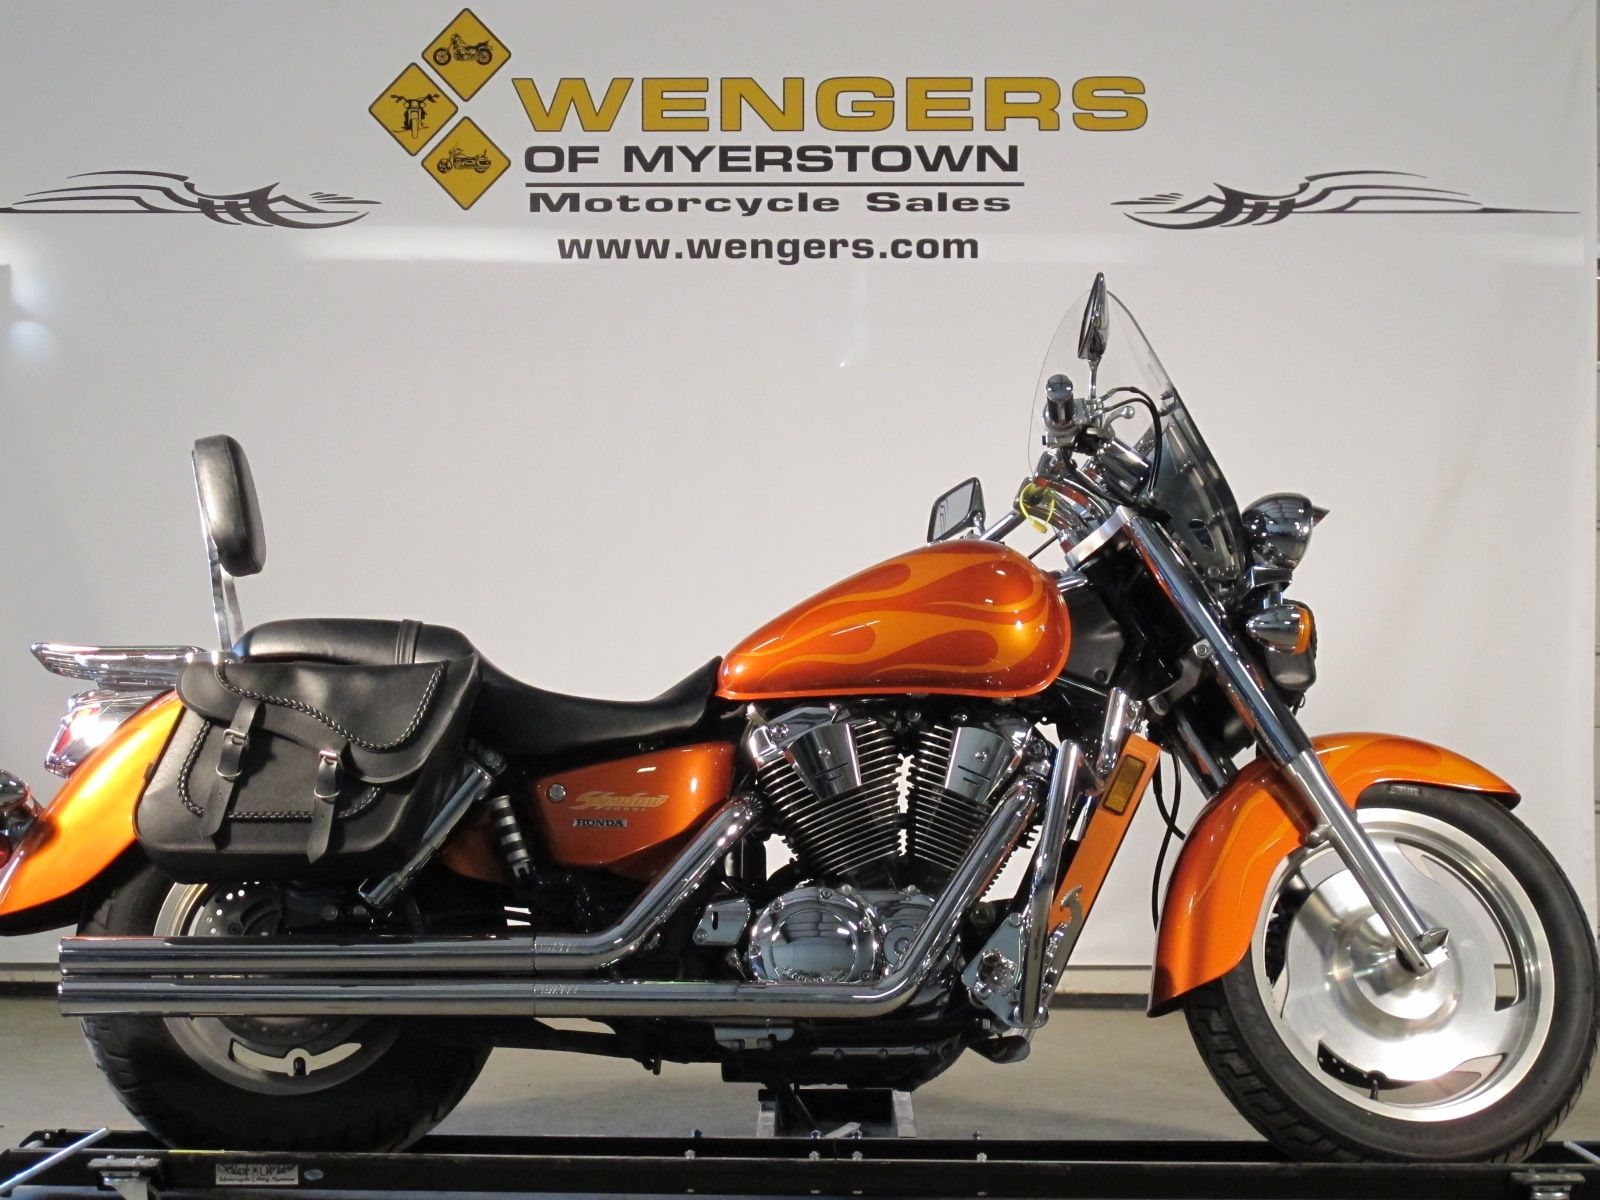 2002 honda shadow sabre 1100 for sale at wengers of myerstown only 4 250 sold bikes for sale. Black Bedroom Furniture Sets. Home Design Ideas